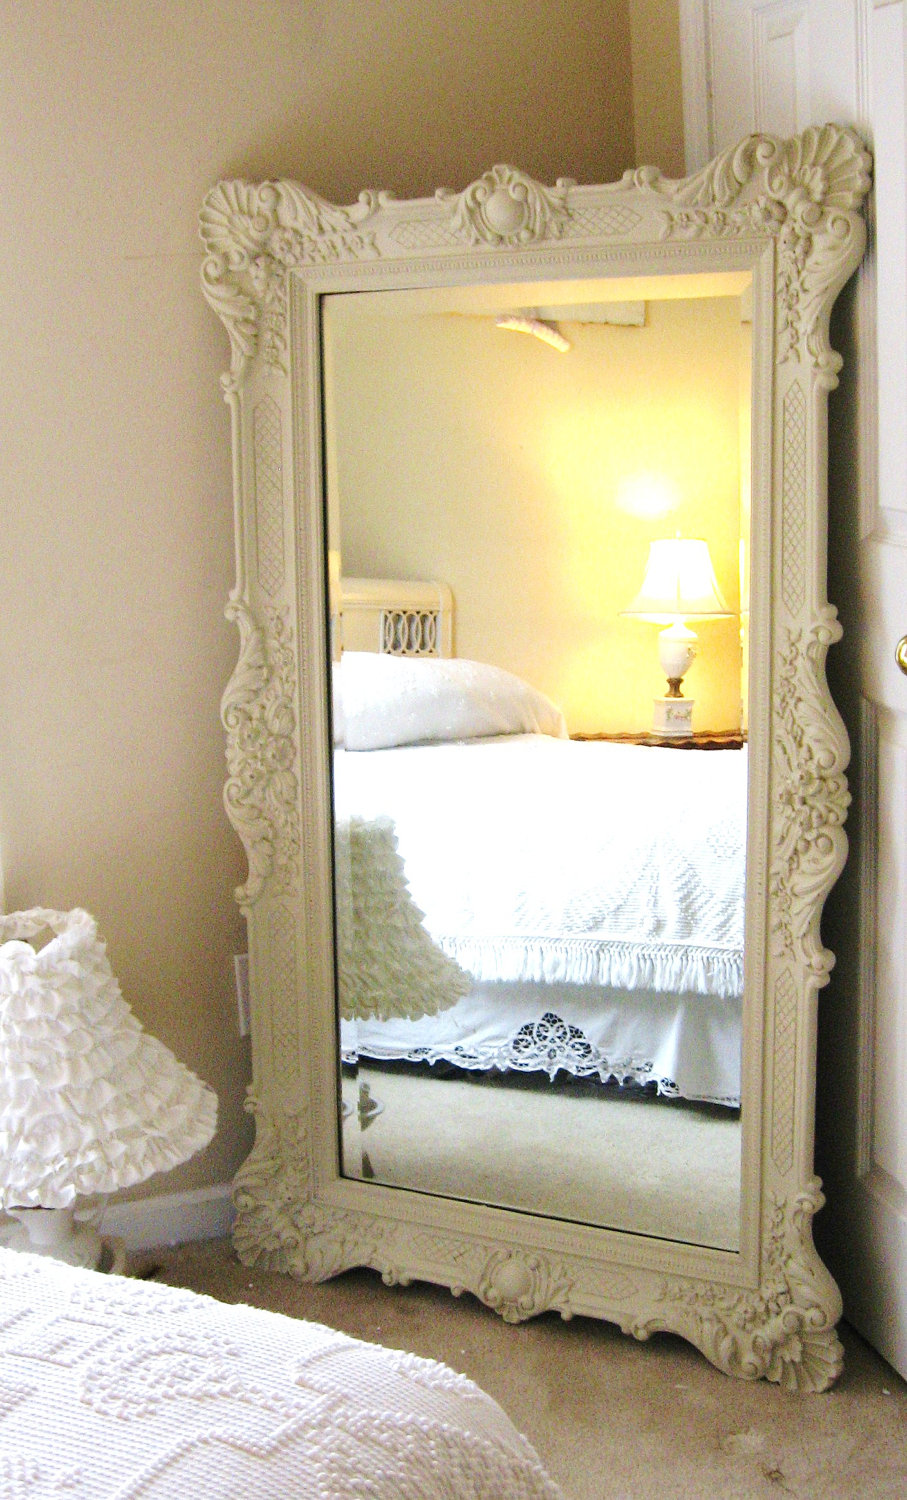 vintage-leaning-mirror-classic-bedroom-interior-design-night-lamp